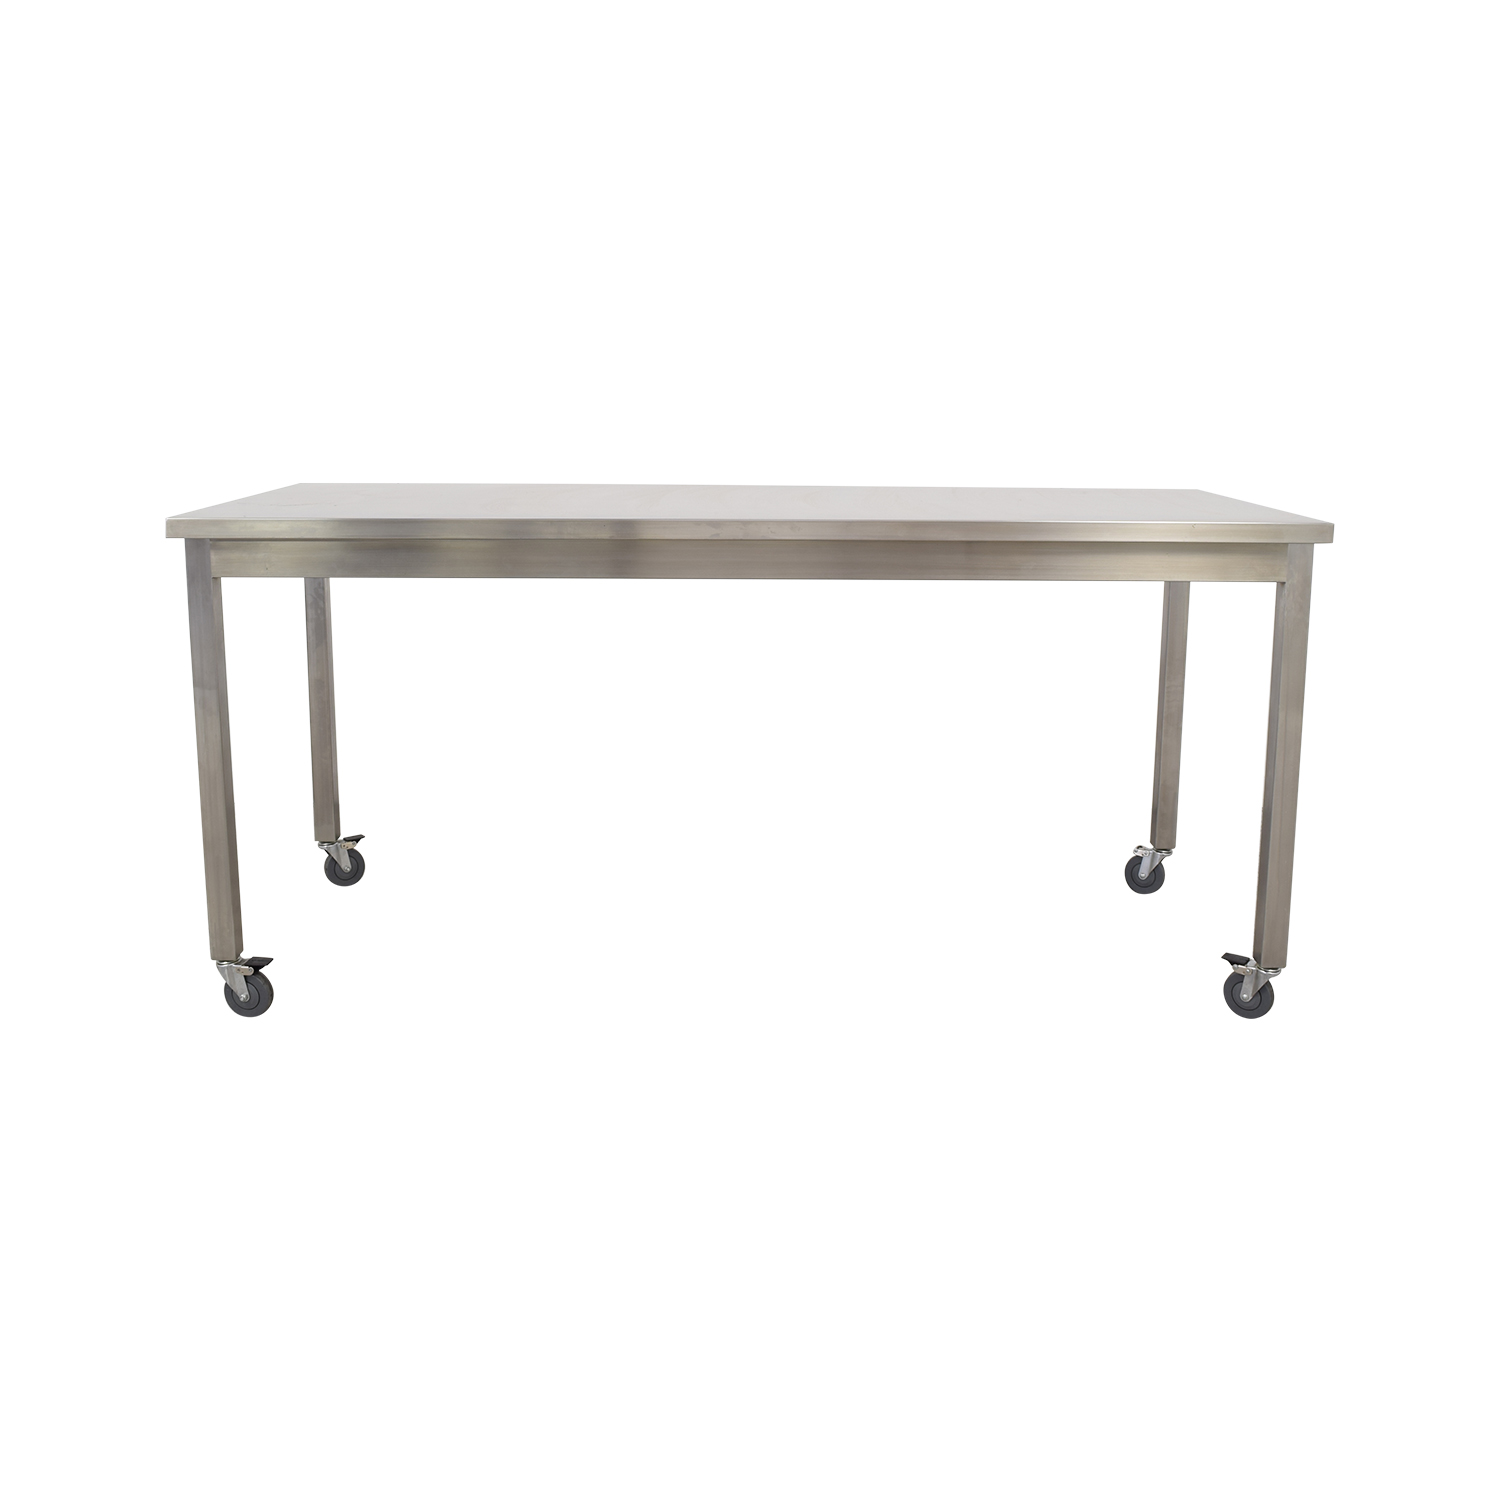 Bowery Kitchen Stainless Steel High Top Table Bowery Kitchen